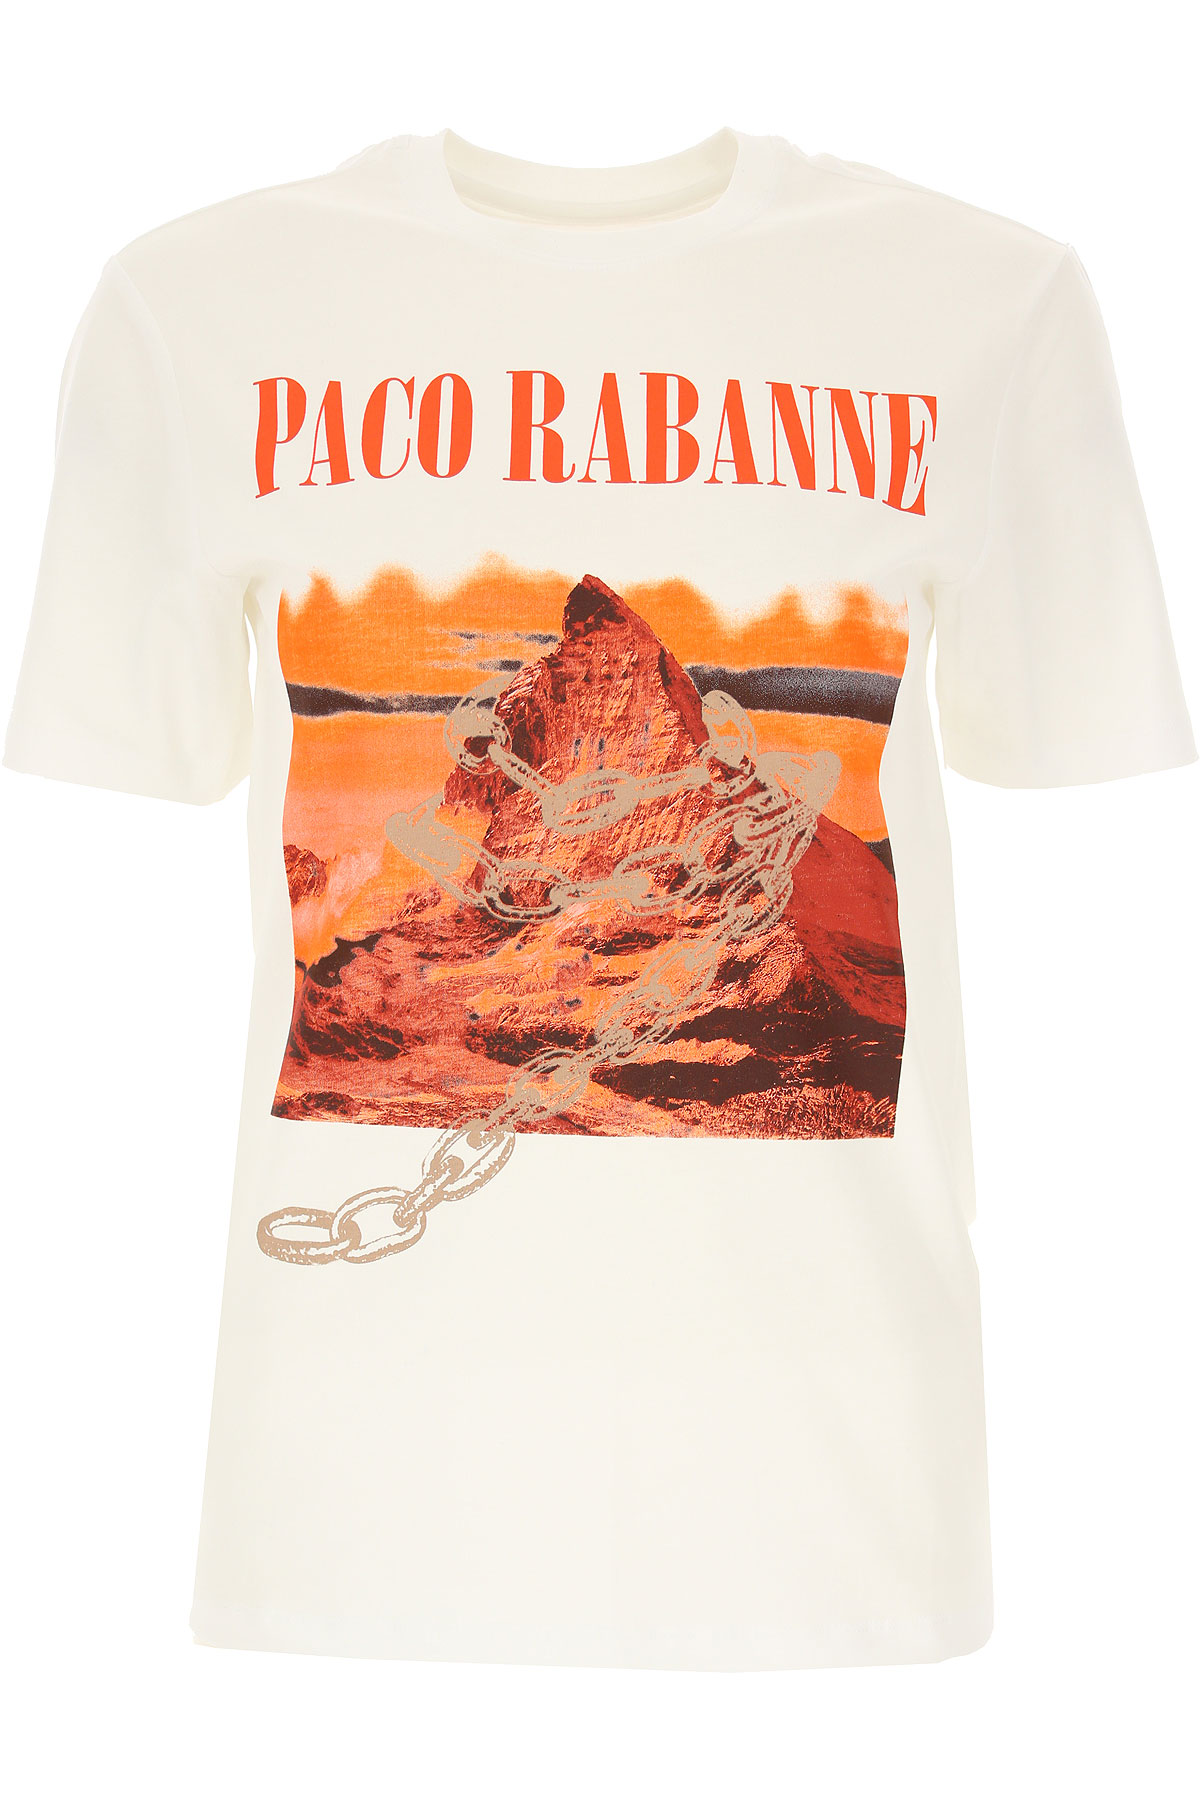 Paco Rabanne T-Shirt for Women On Sale, White, Cotton, 2019, 6 8